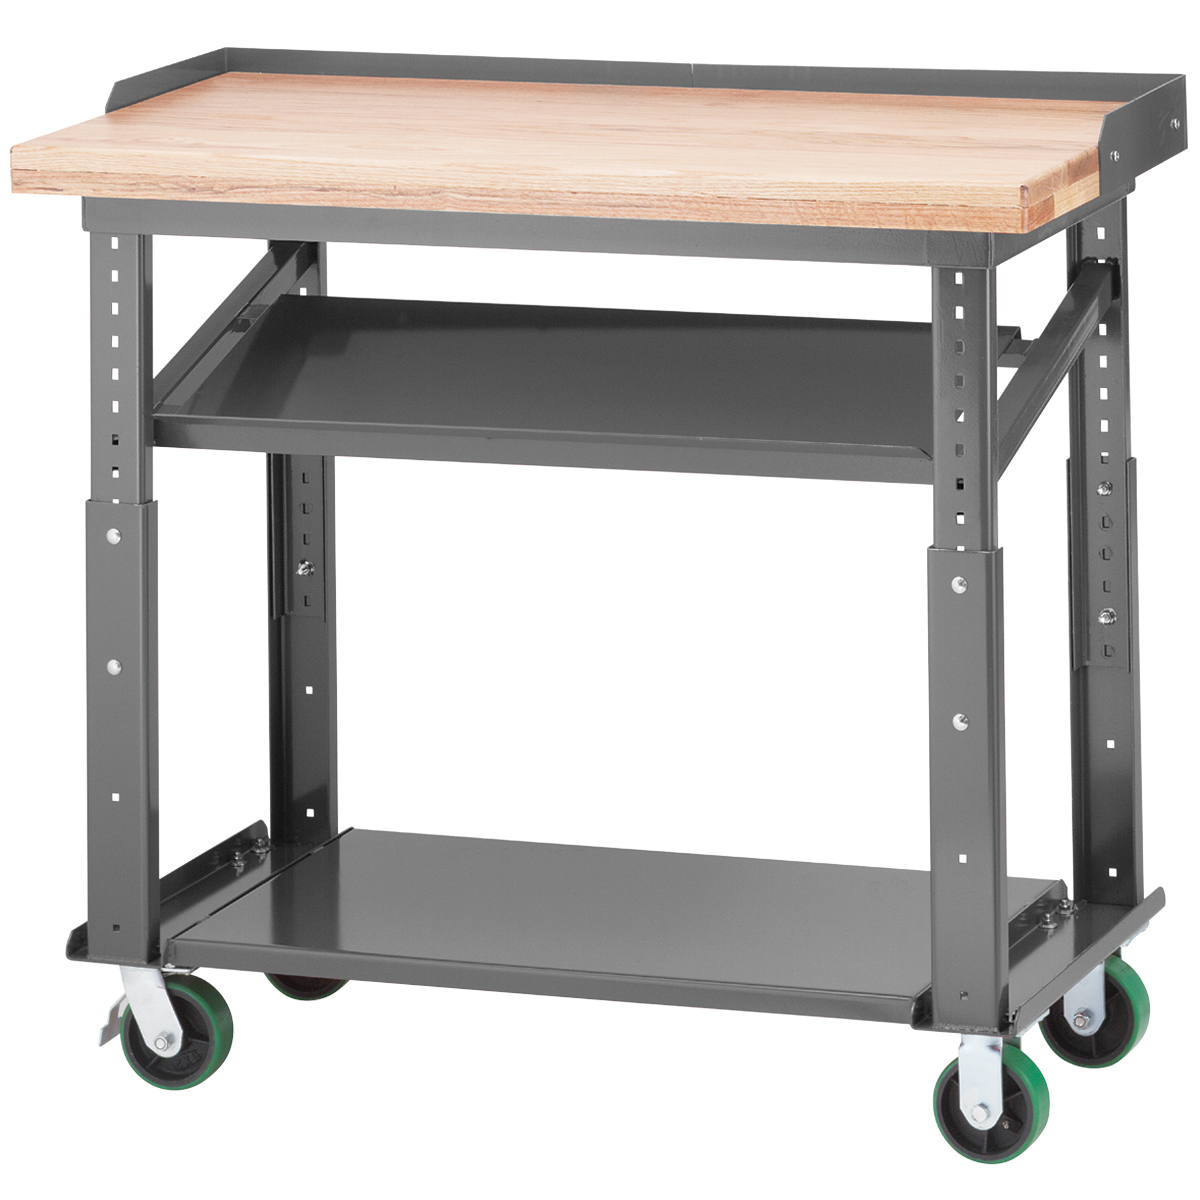 Heavy Duty Mobile Work Table, 24x48 Adjustable Height, Gray (RHWB2448P5PY0G)